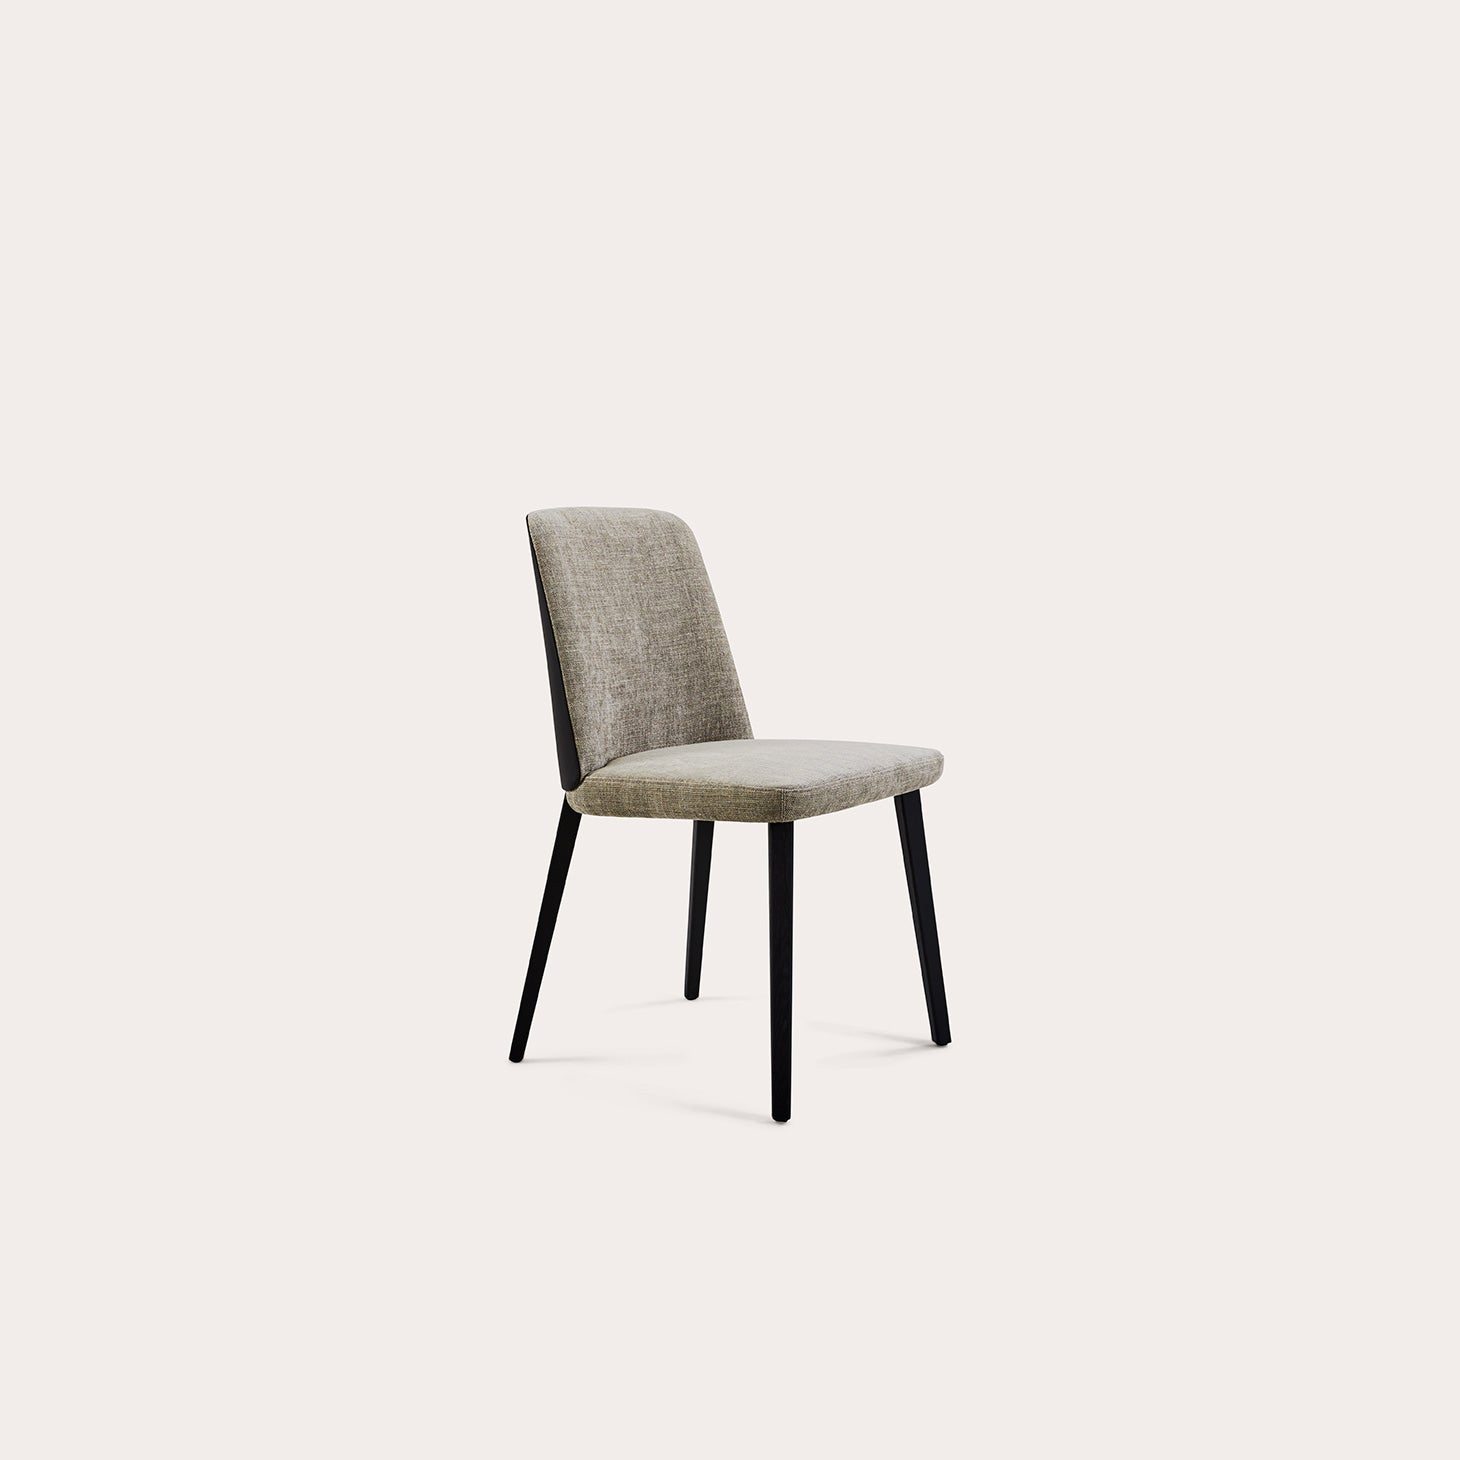 Back Me Up Seating Arian Brekveld Designer Furniture Sku: 134-120-10088